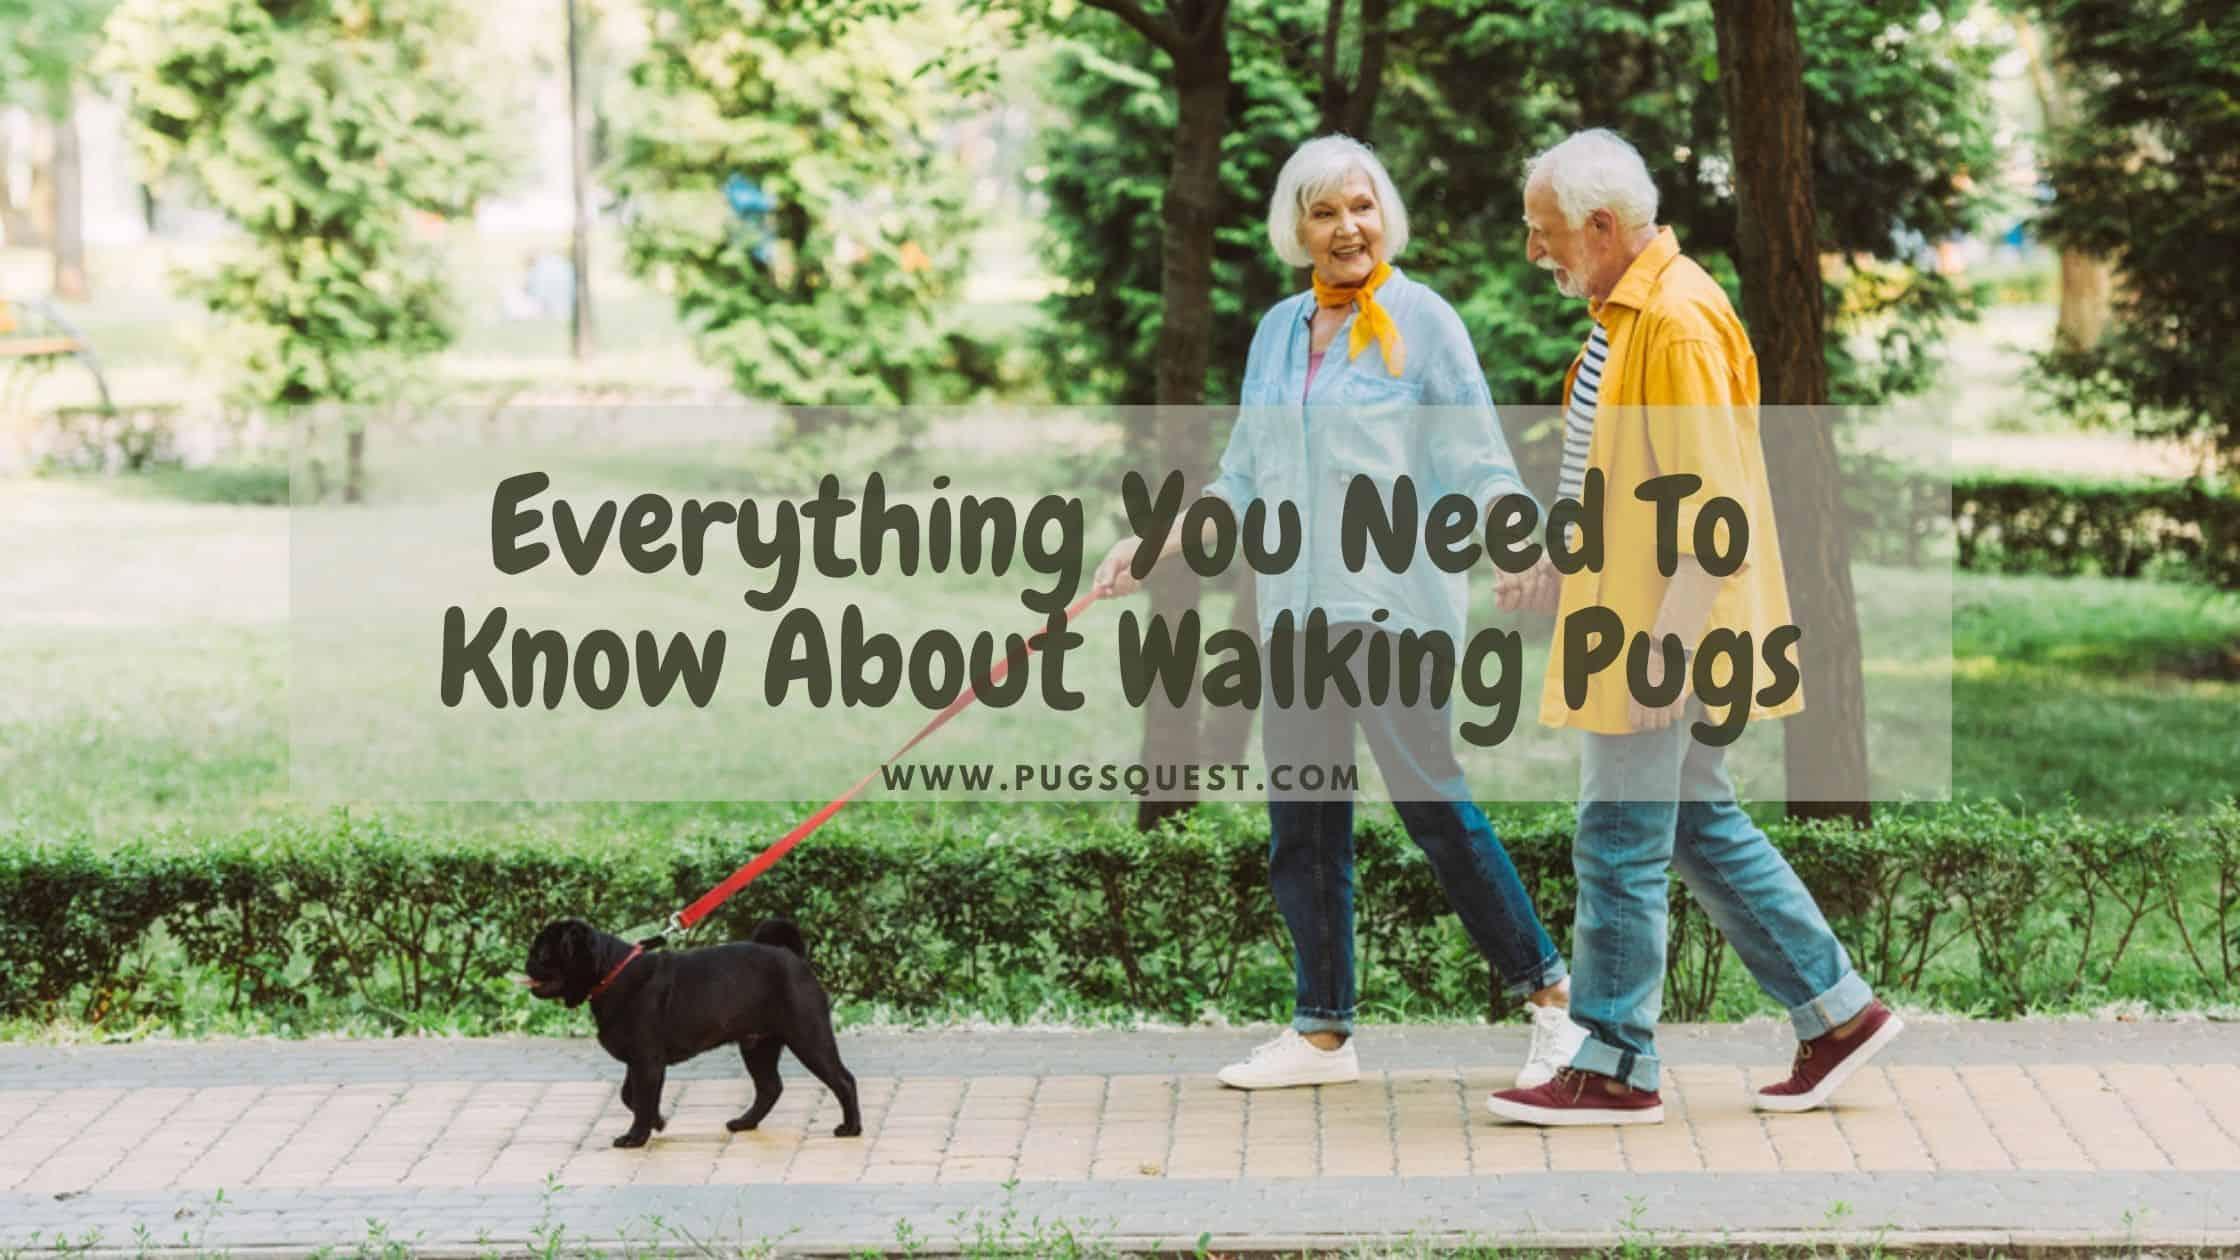 Everything You Need To Know About Walking Pugs